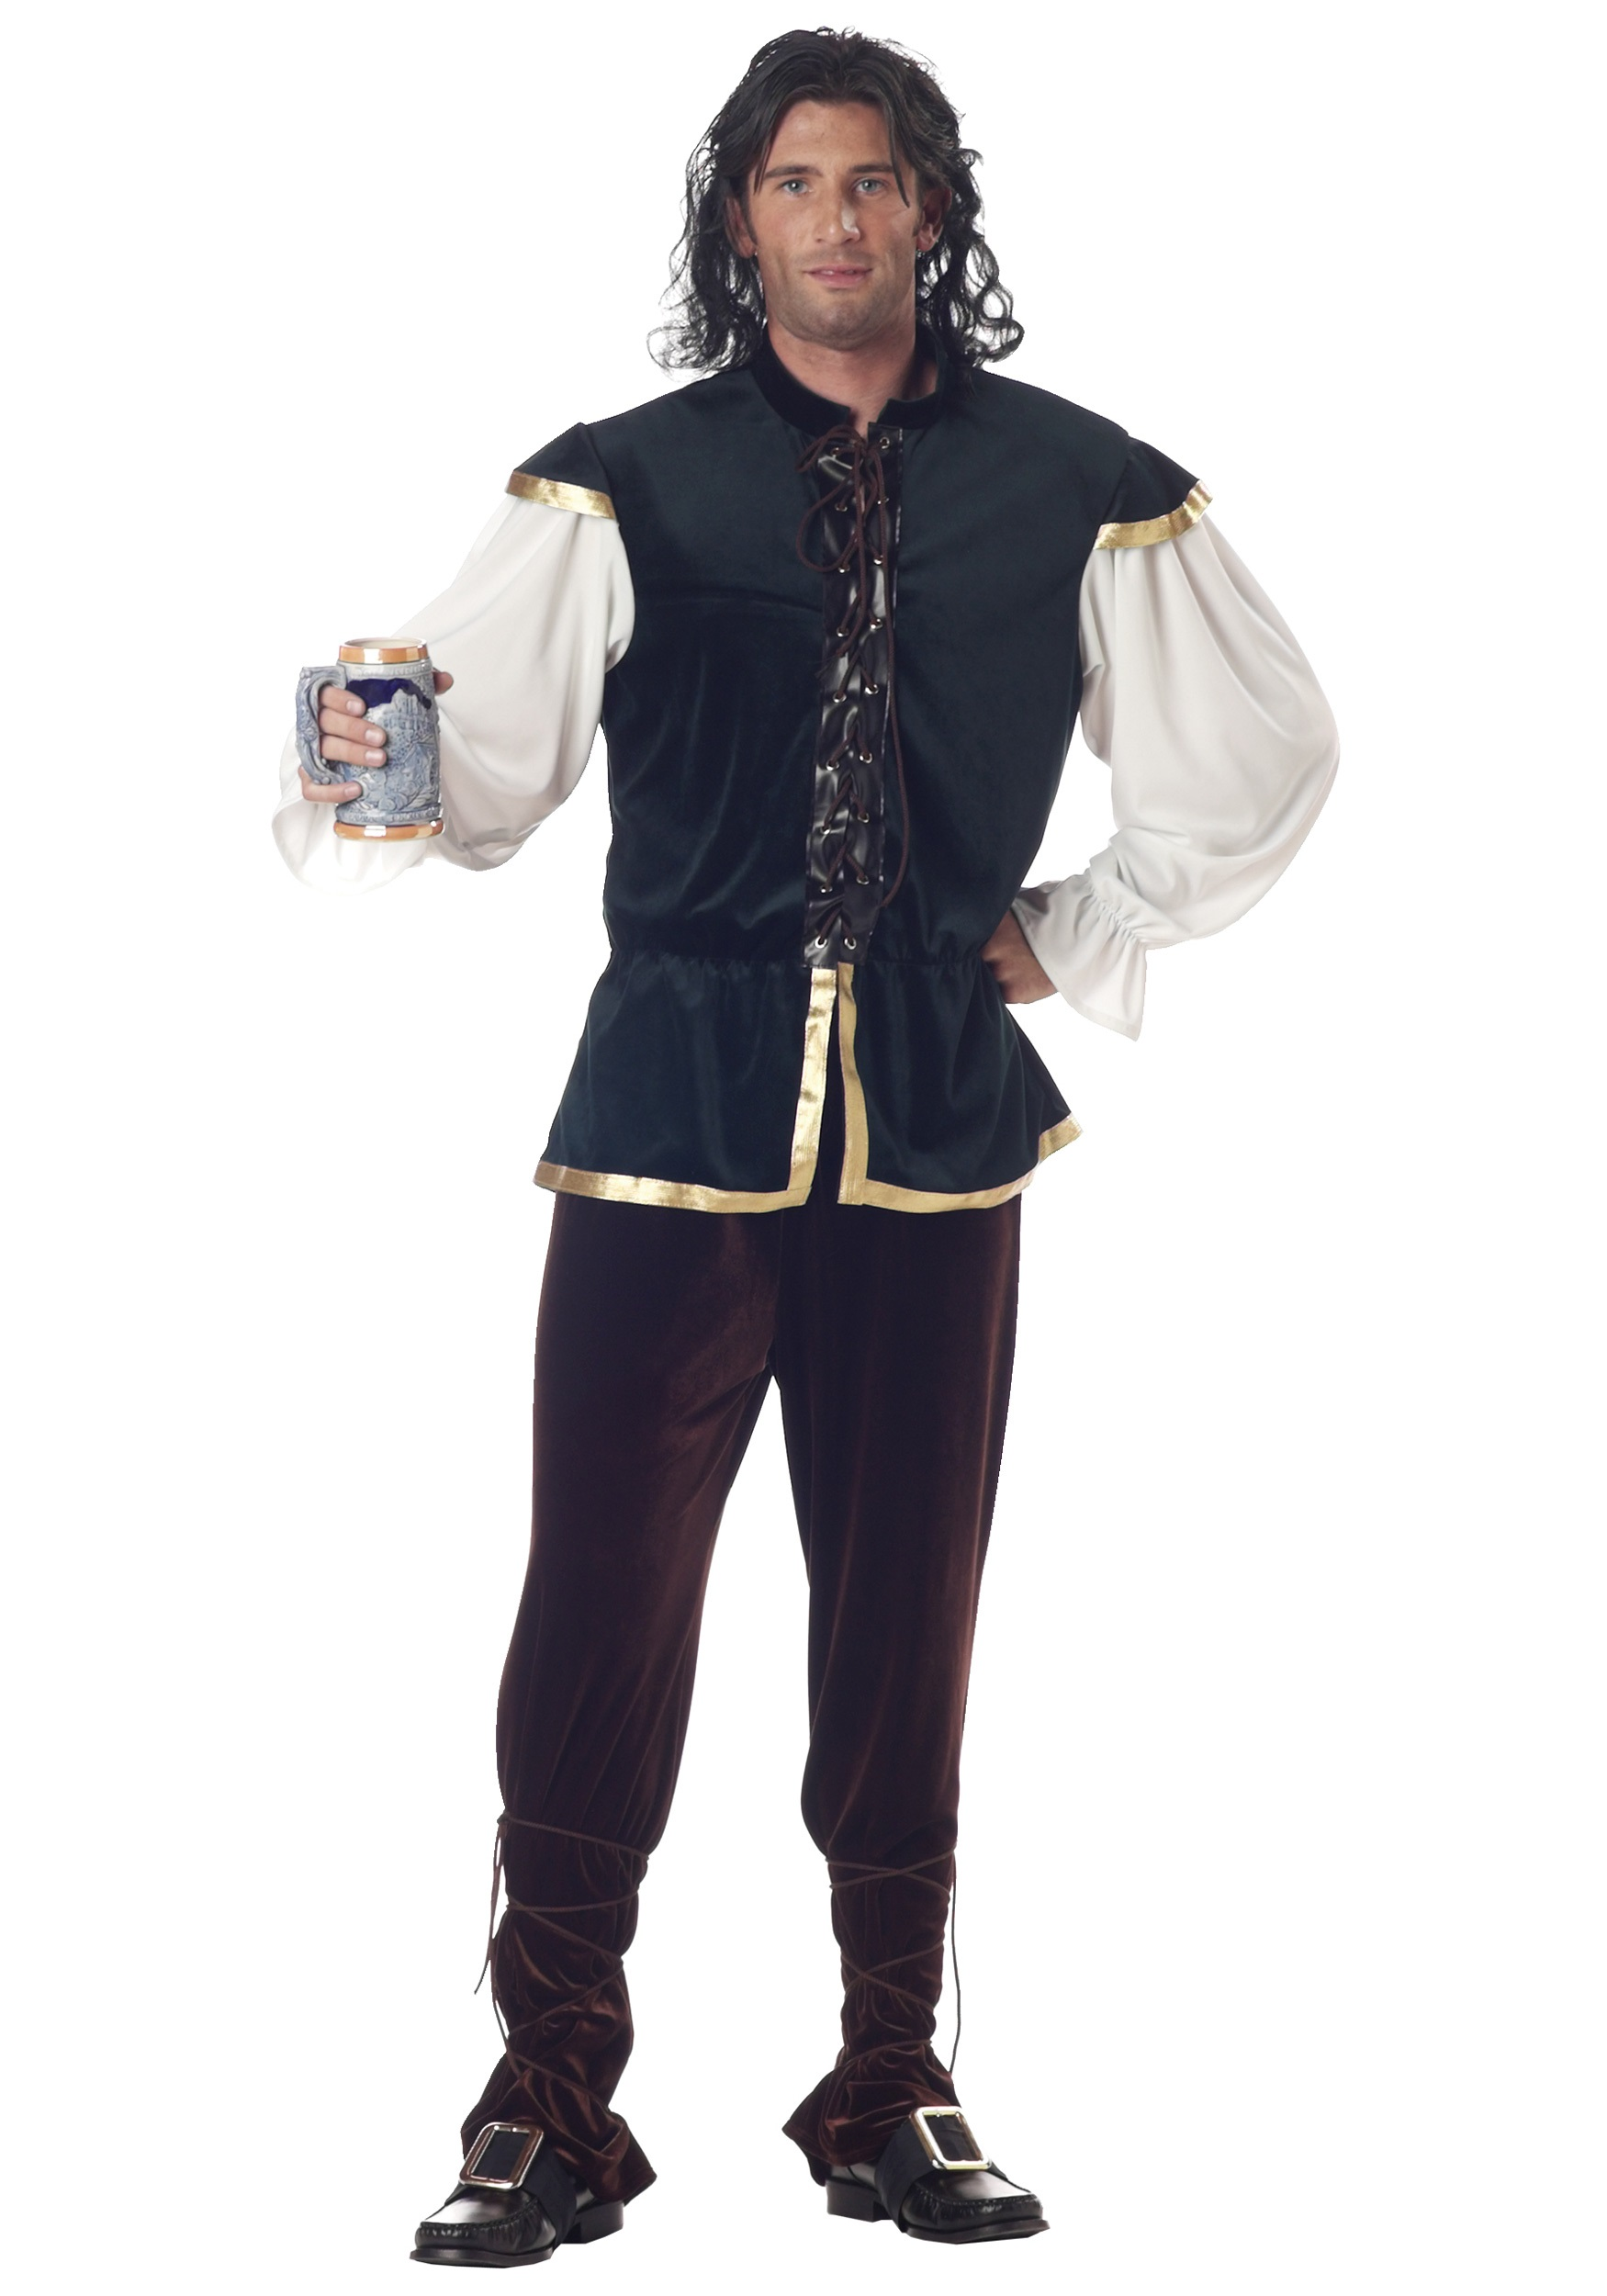 Caban homme costume